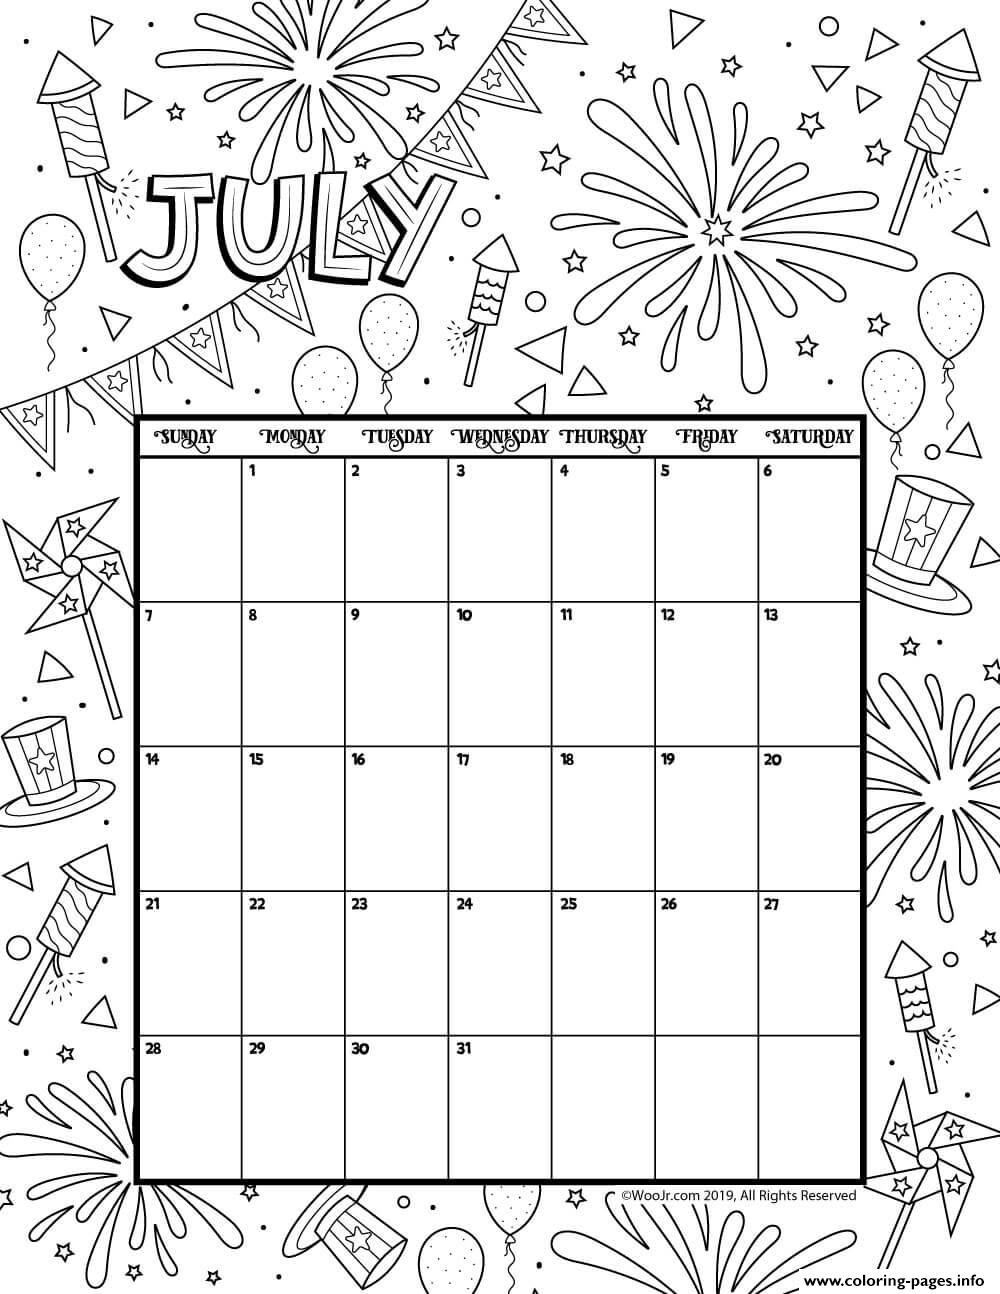 July 2019 Coloring Calendar coloring pages